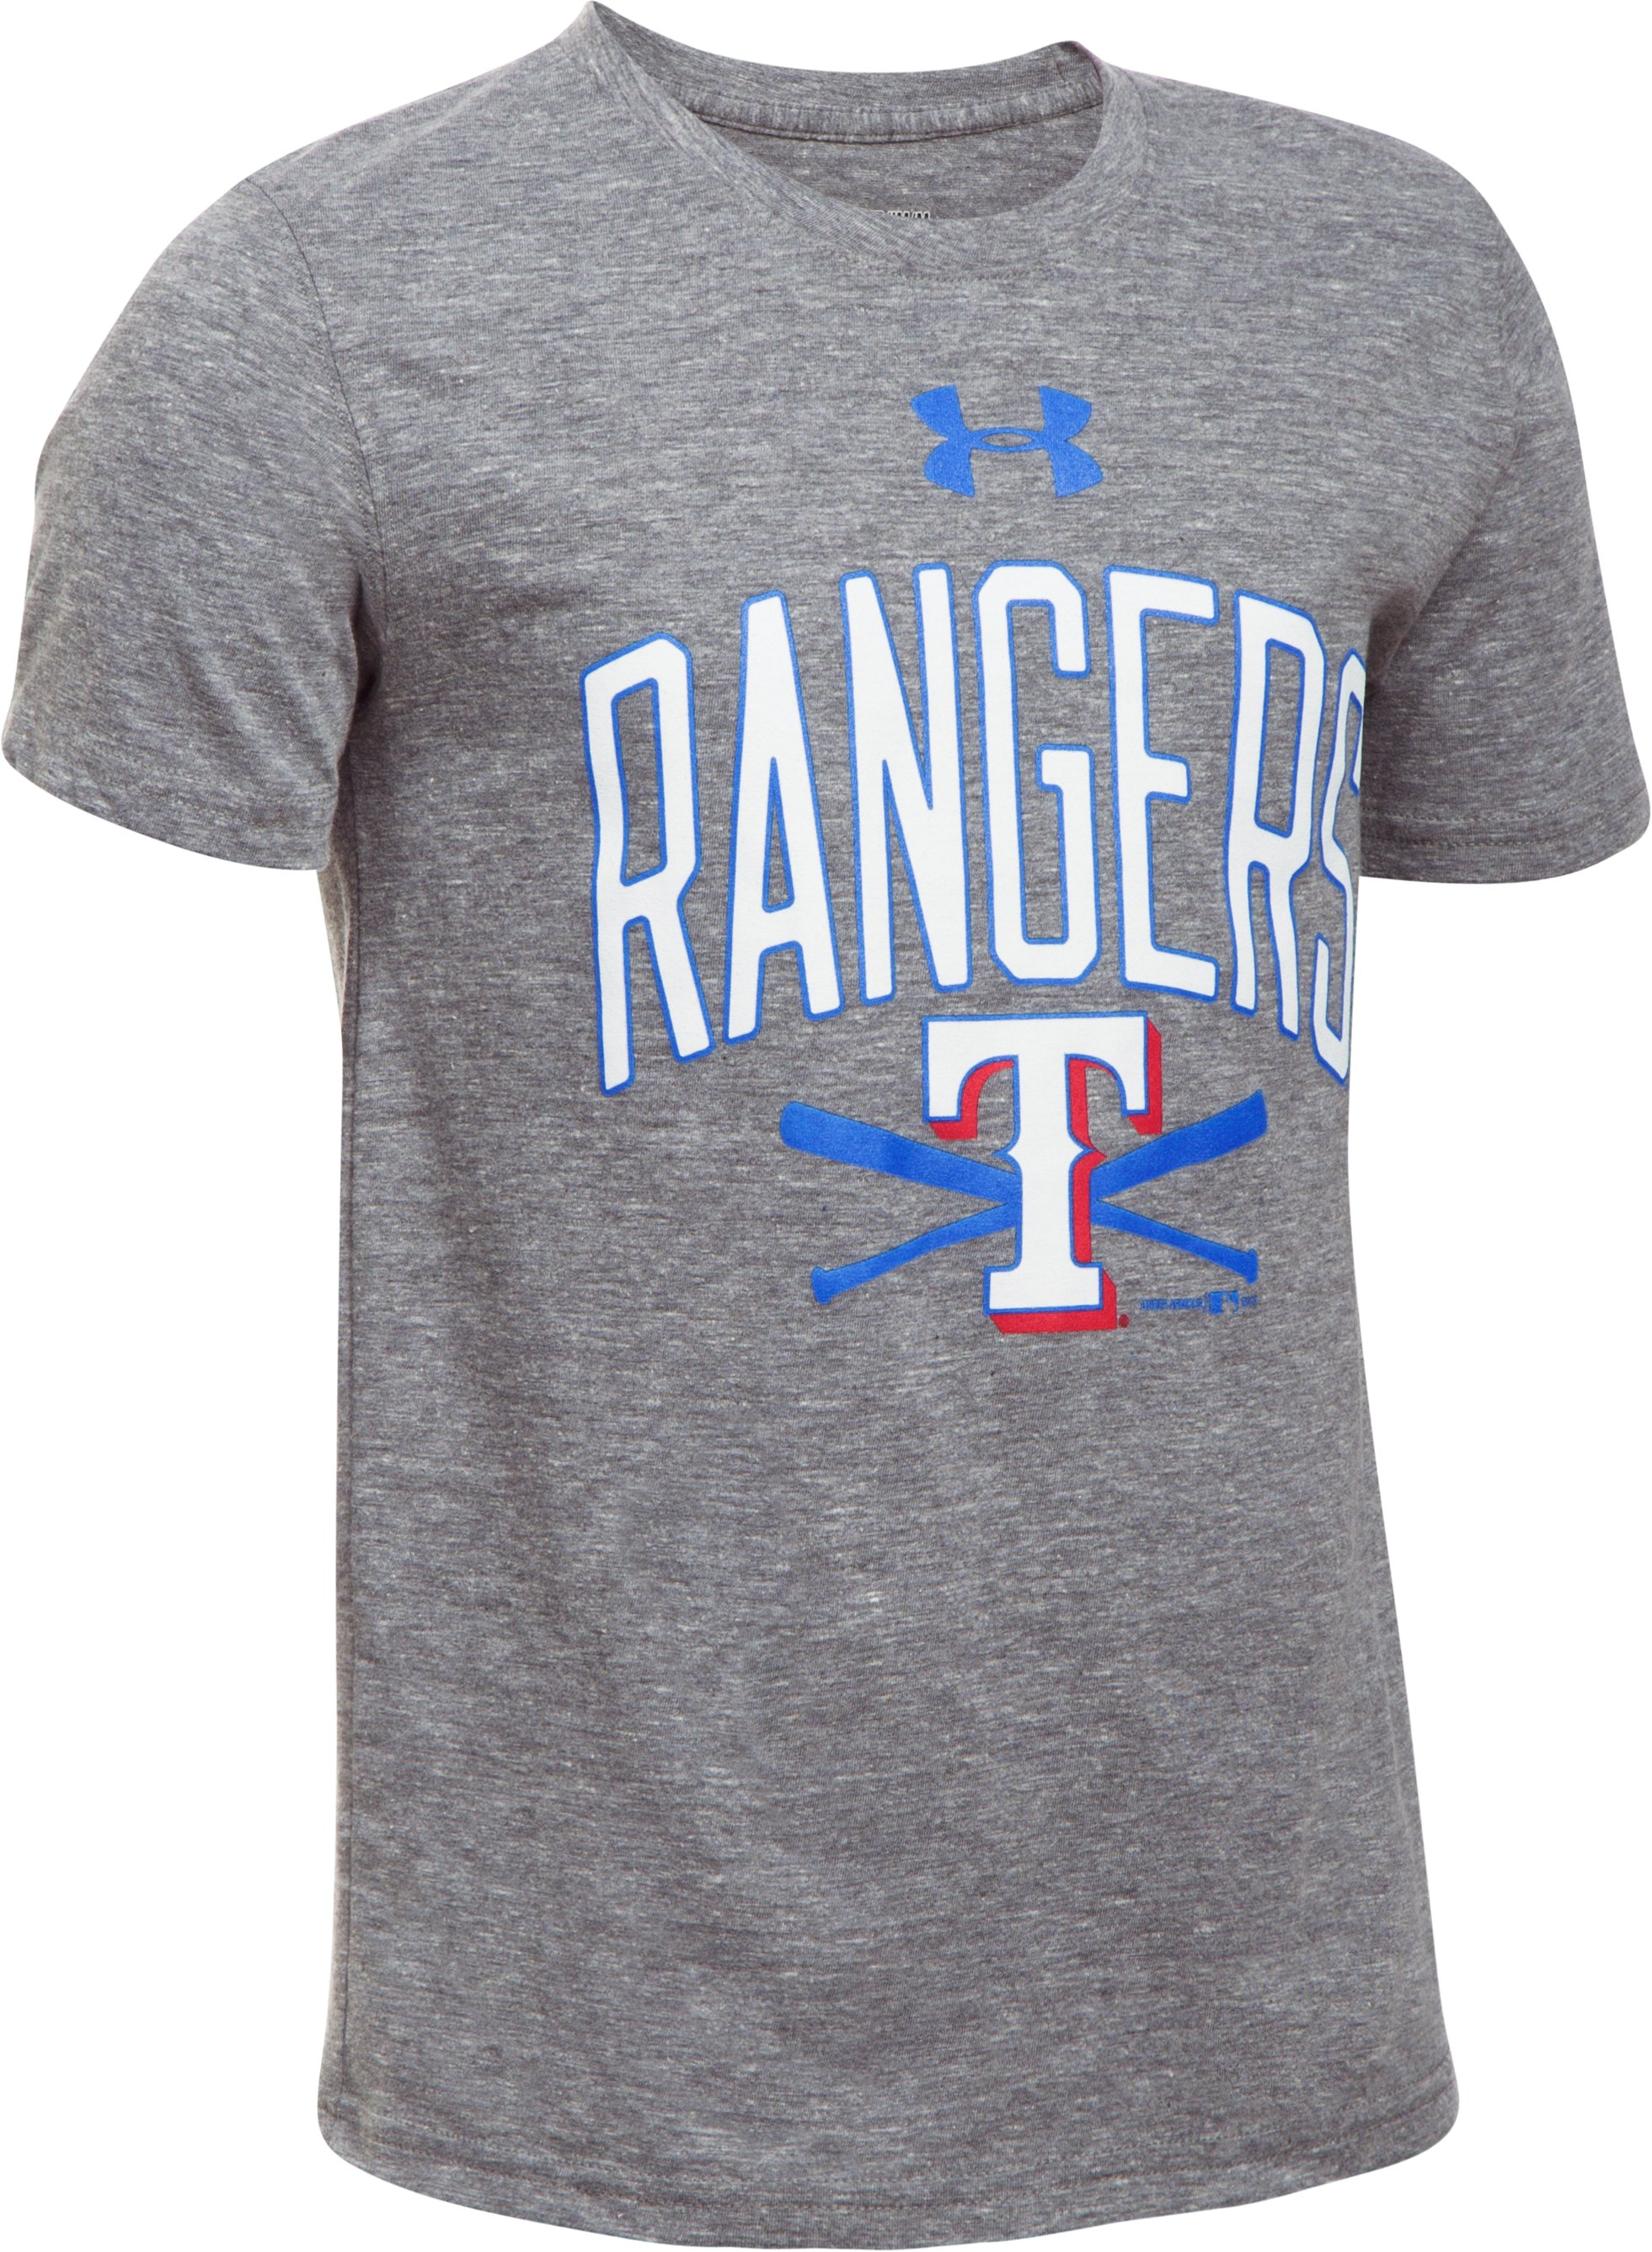 Boys' Texas Rangers Tri-Blend T-Shirt, True Gray Heather, undefined